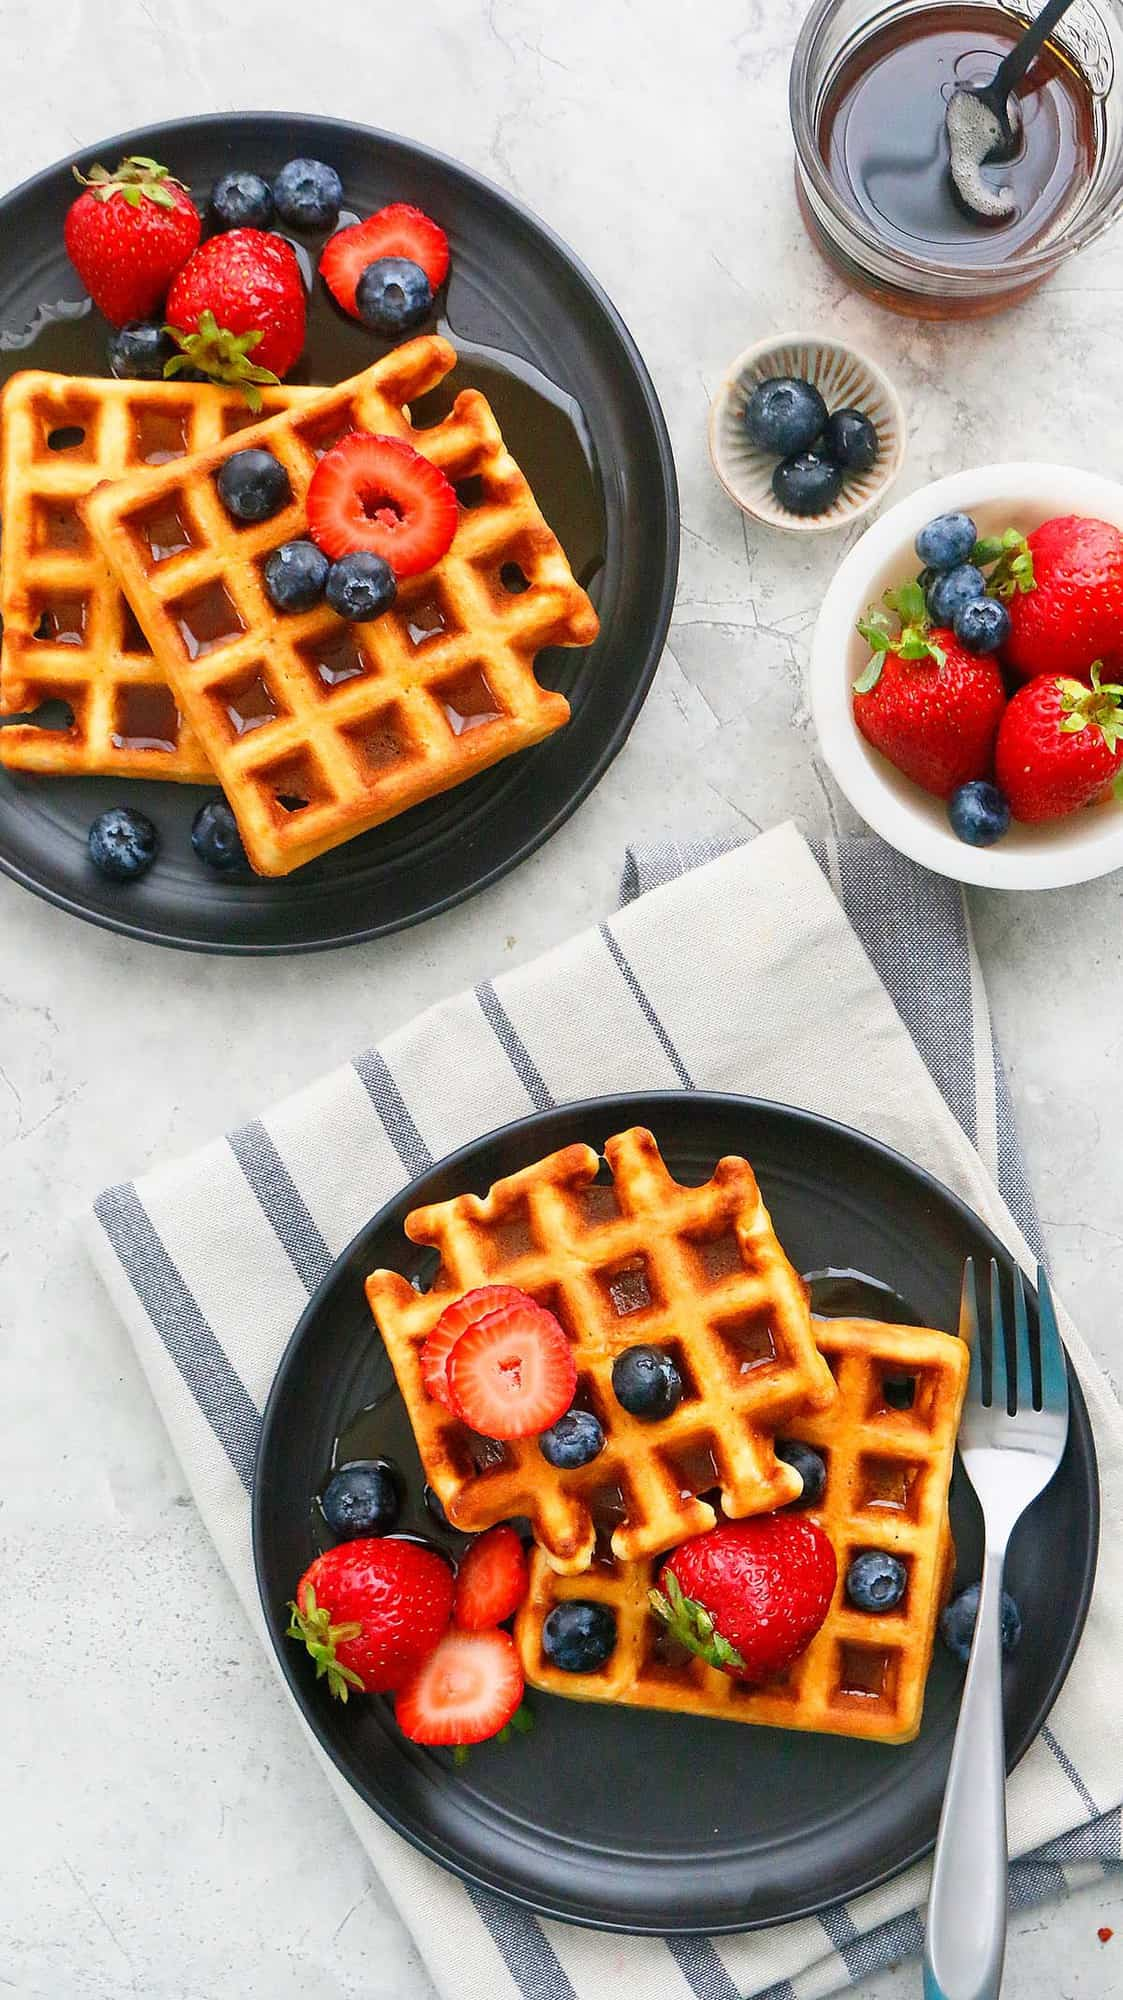 Belgian waffles from scratch topped with butter and fruits.